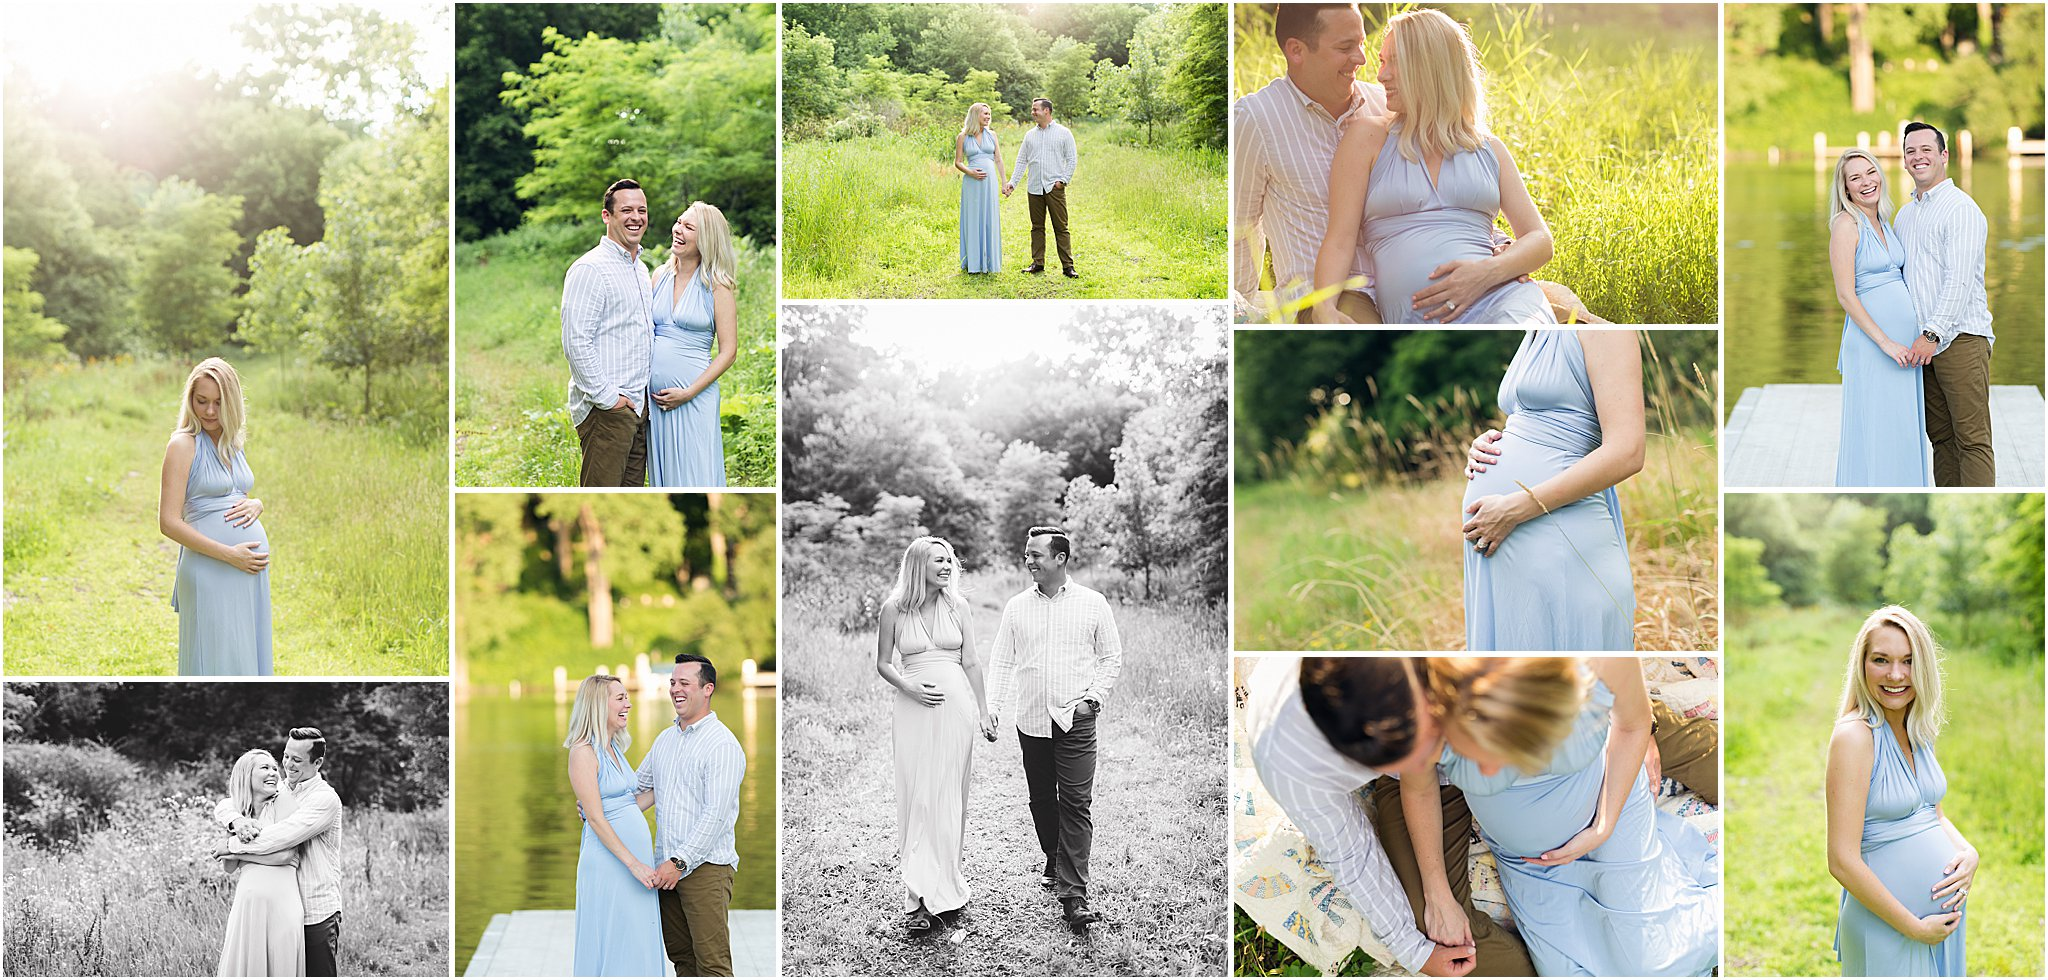 Caitlin Claire Studio Neenah Maternity Pictures